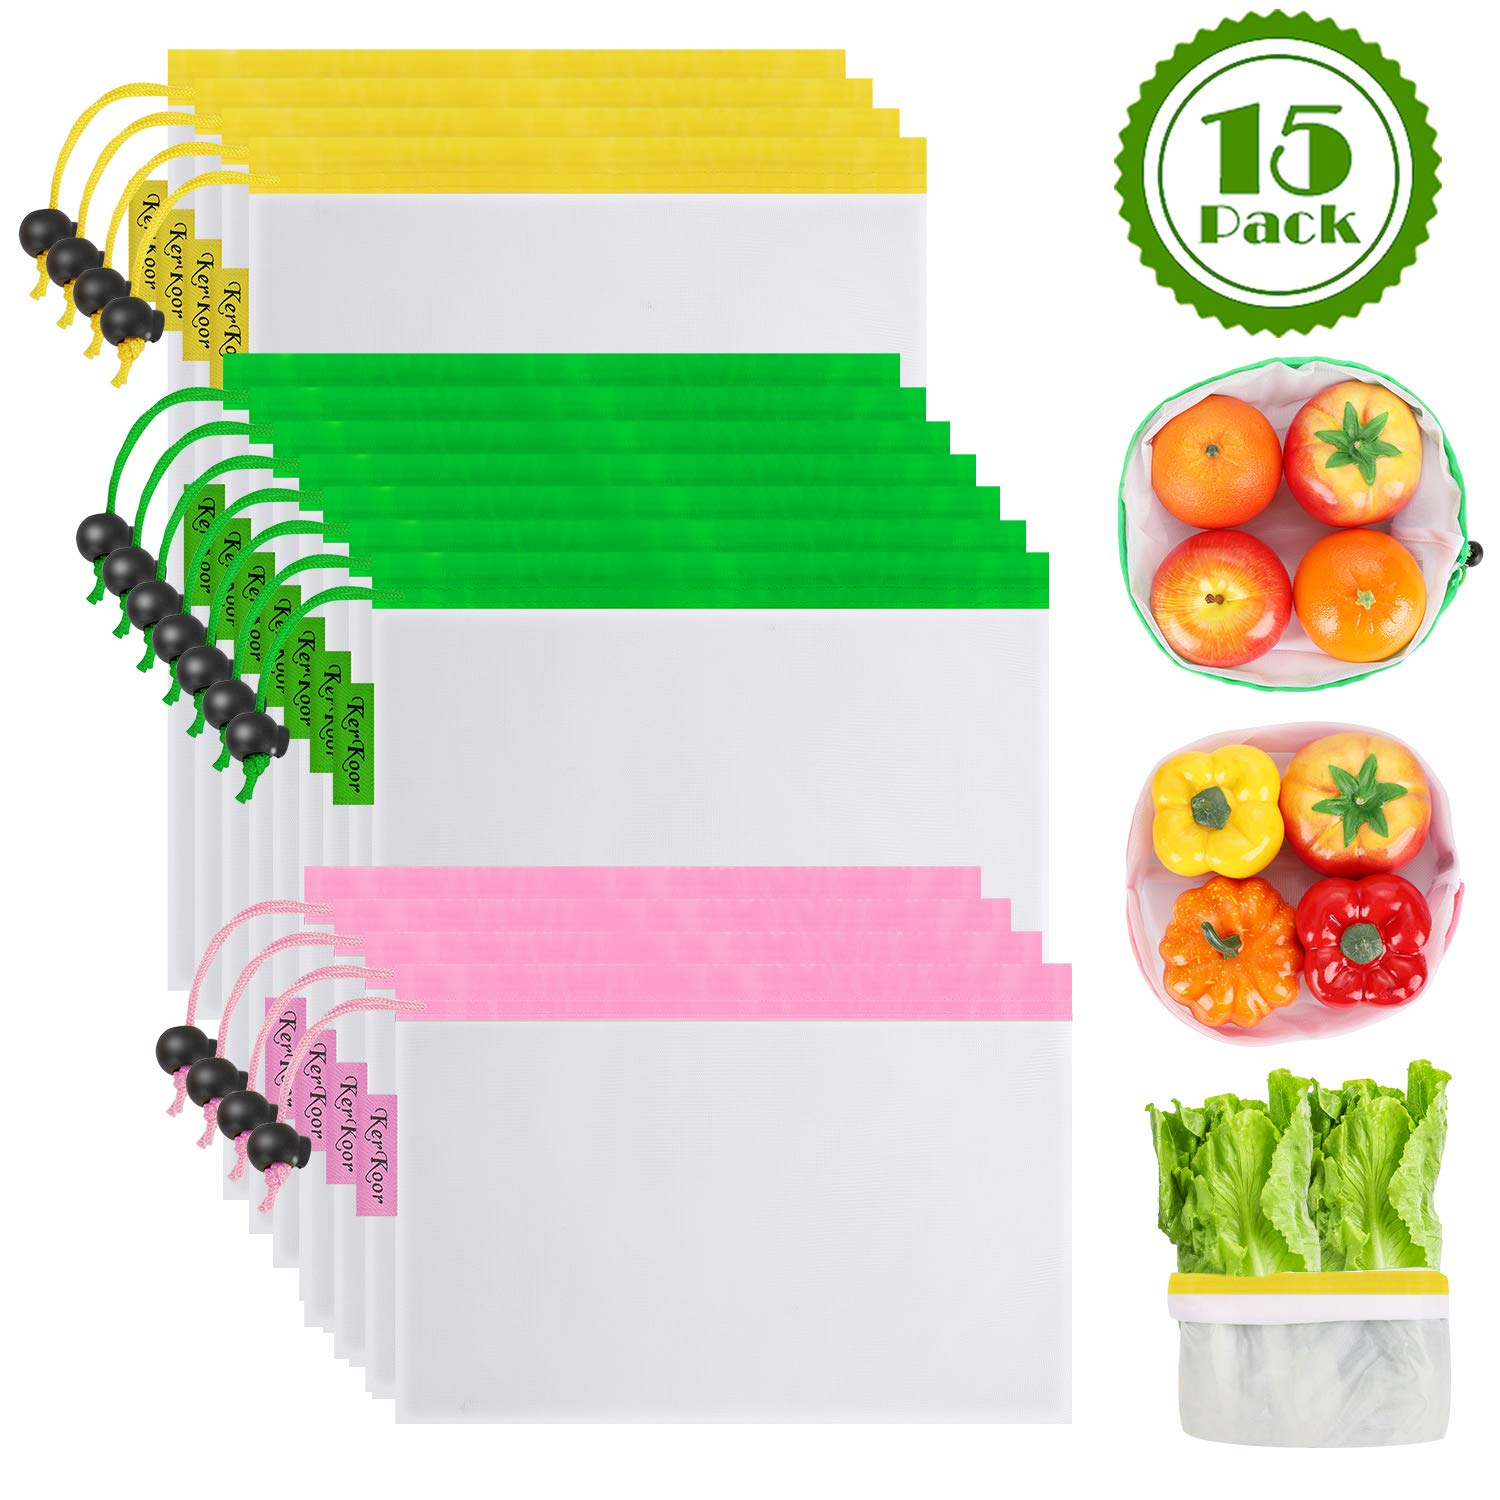 Reusable Produce Mesh Bags - Washable Set of 15 Premium Eco-Friendly See Through Shopping bags with Drawstring for Fruits, Vegetable, Food, Toys, Grocery Storage, 4 Large, 7 Medium, 4 Small